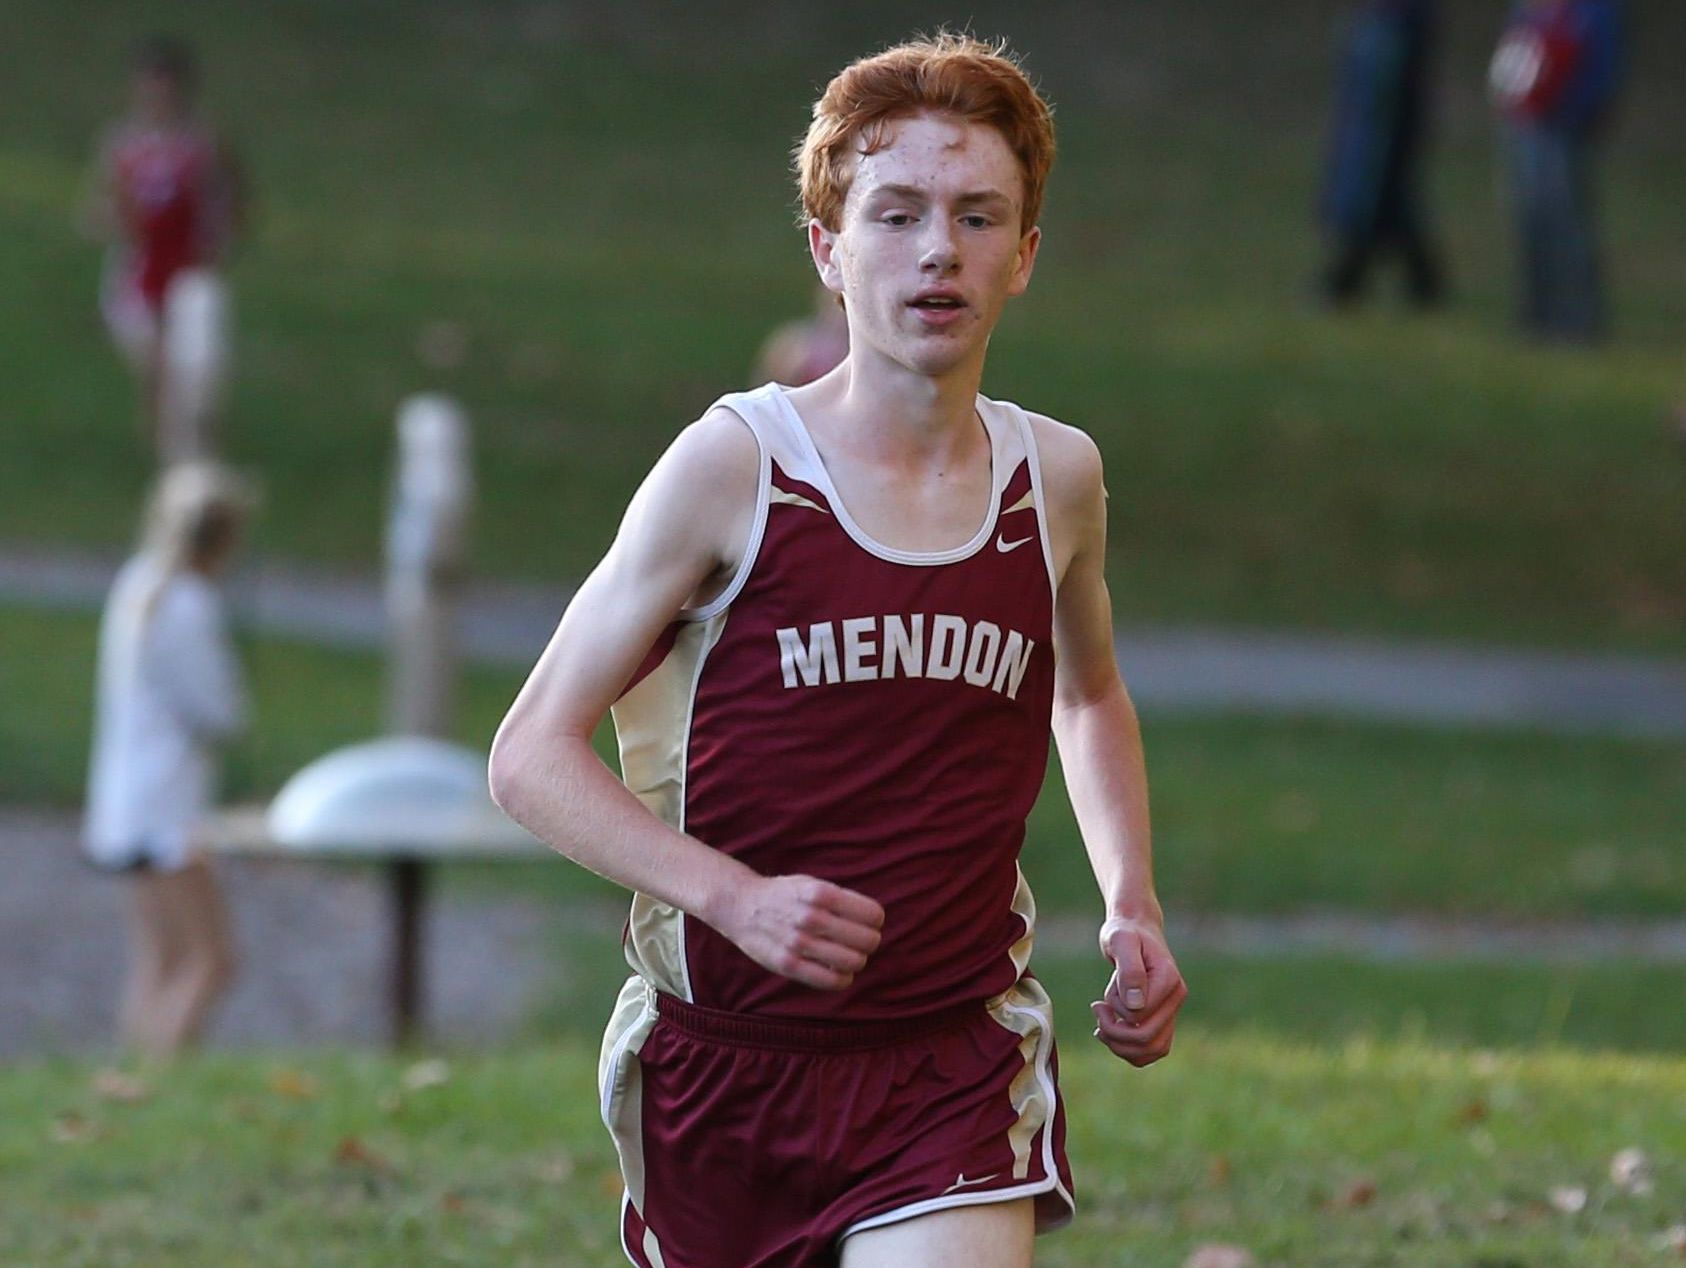 Nathan Lawler, Pittsford Mendon, races to the finish line as he wins the boys race during the Section V cross country meet at Mendon Ponds Park in Mendon on Thursday.